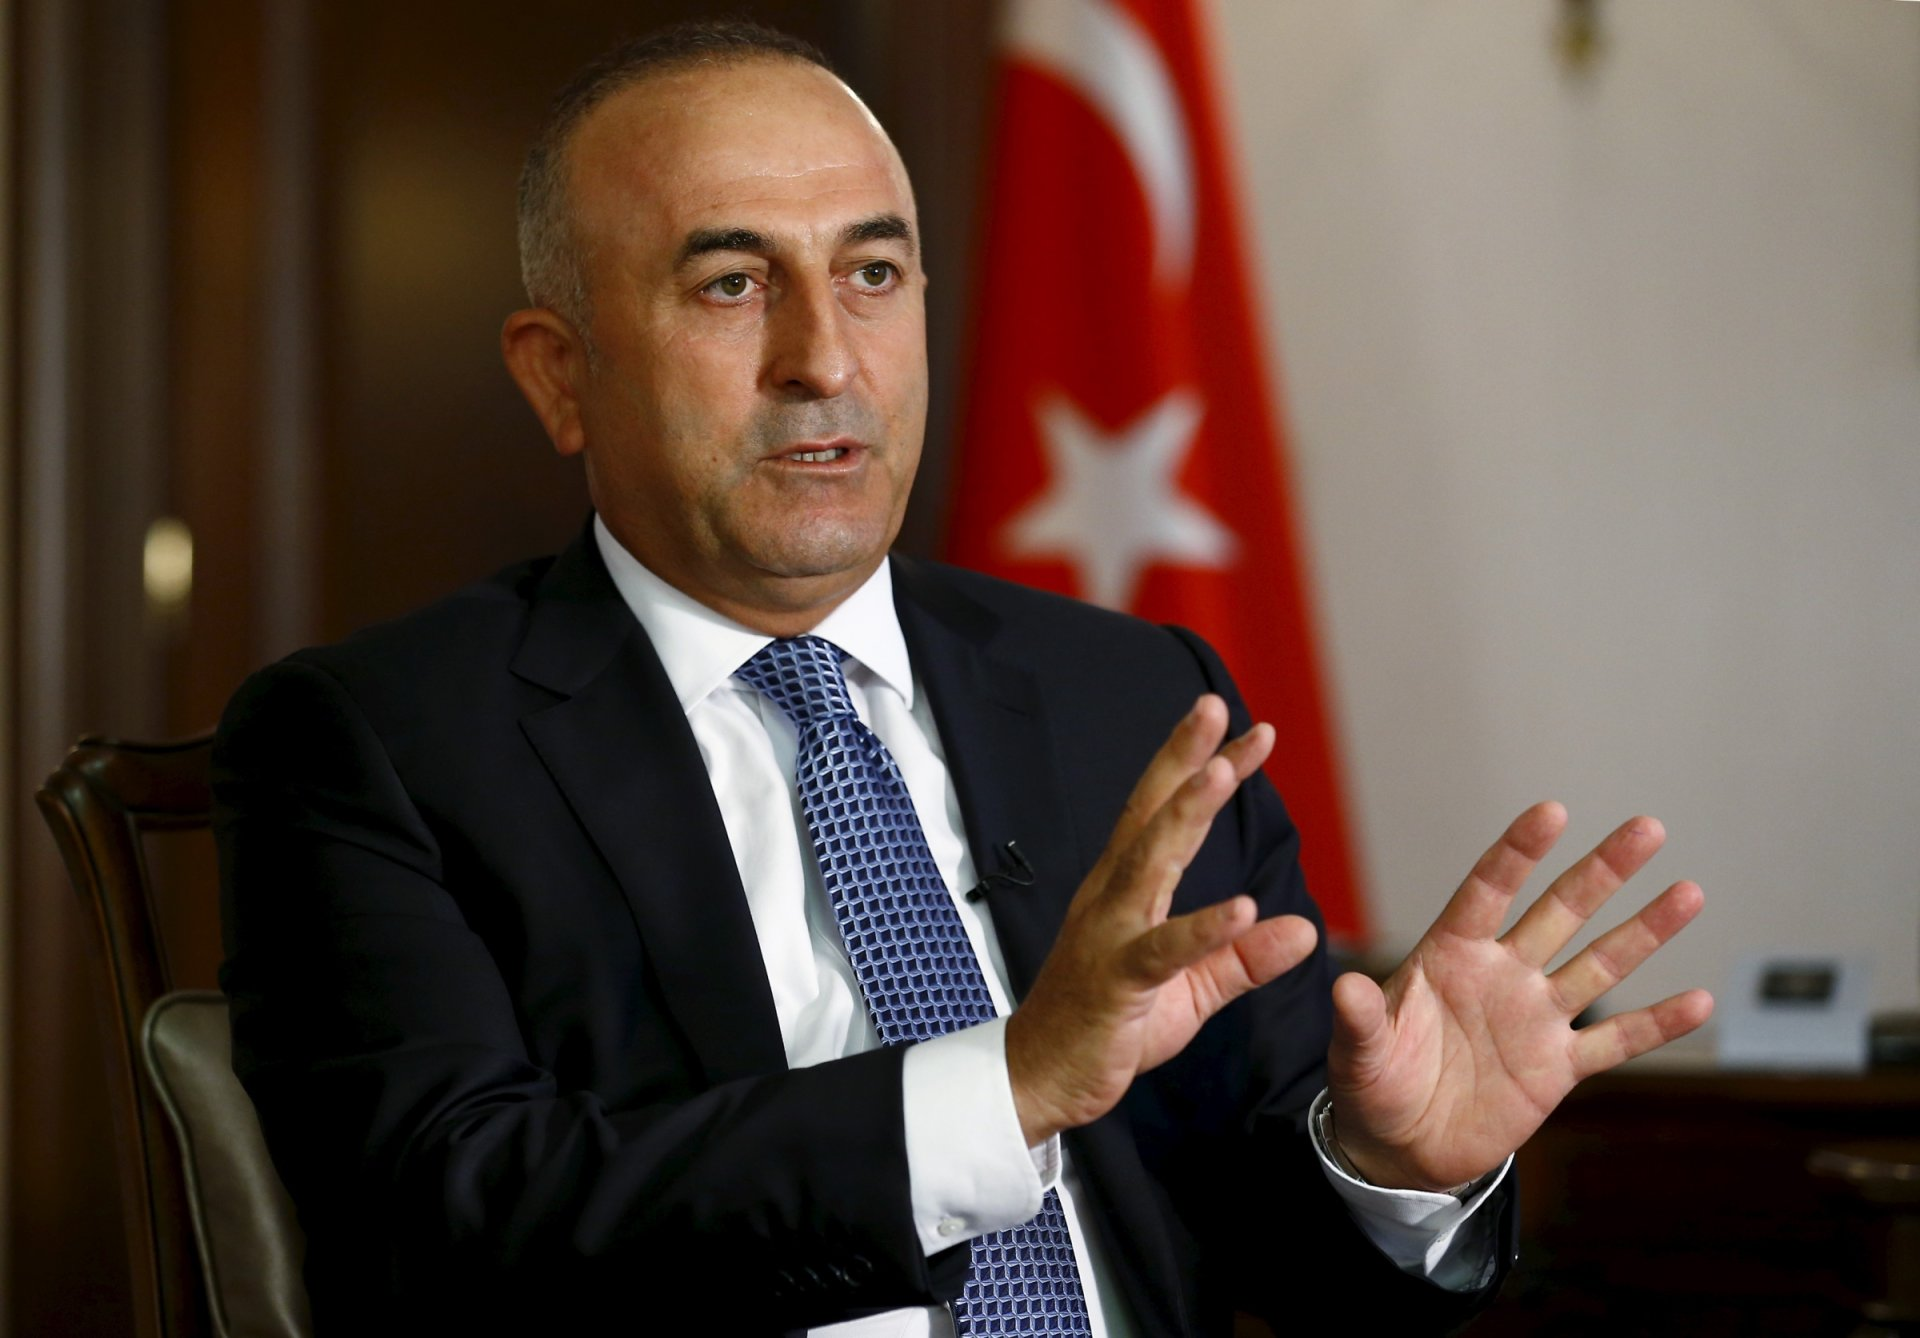 Cavusoglu: In which European country has religious duty been prevented?